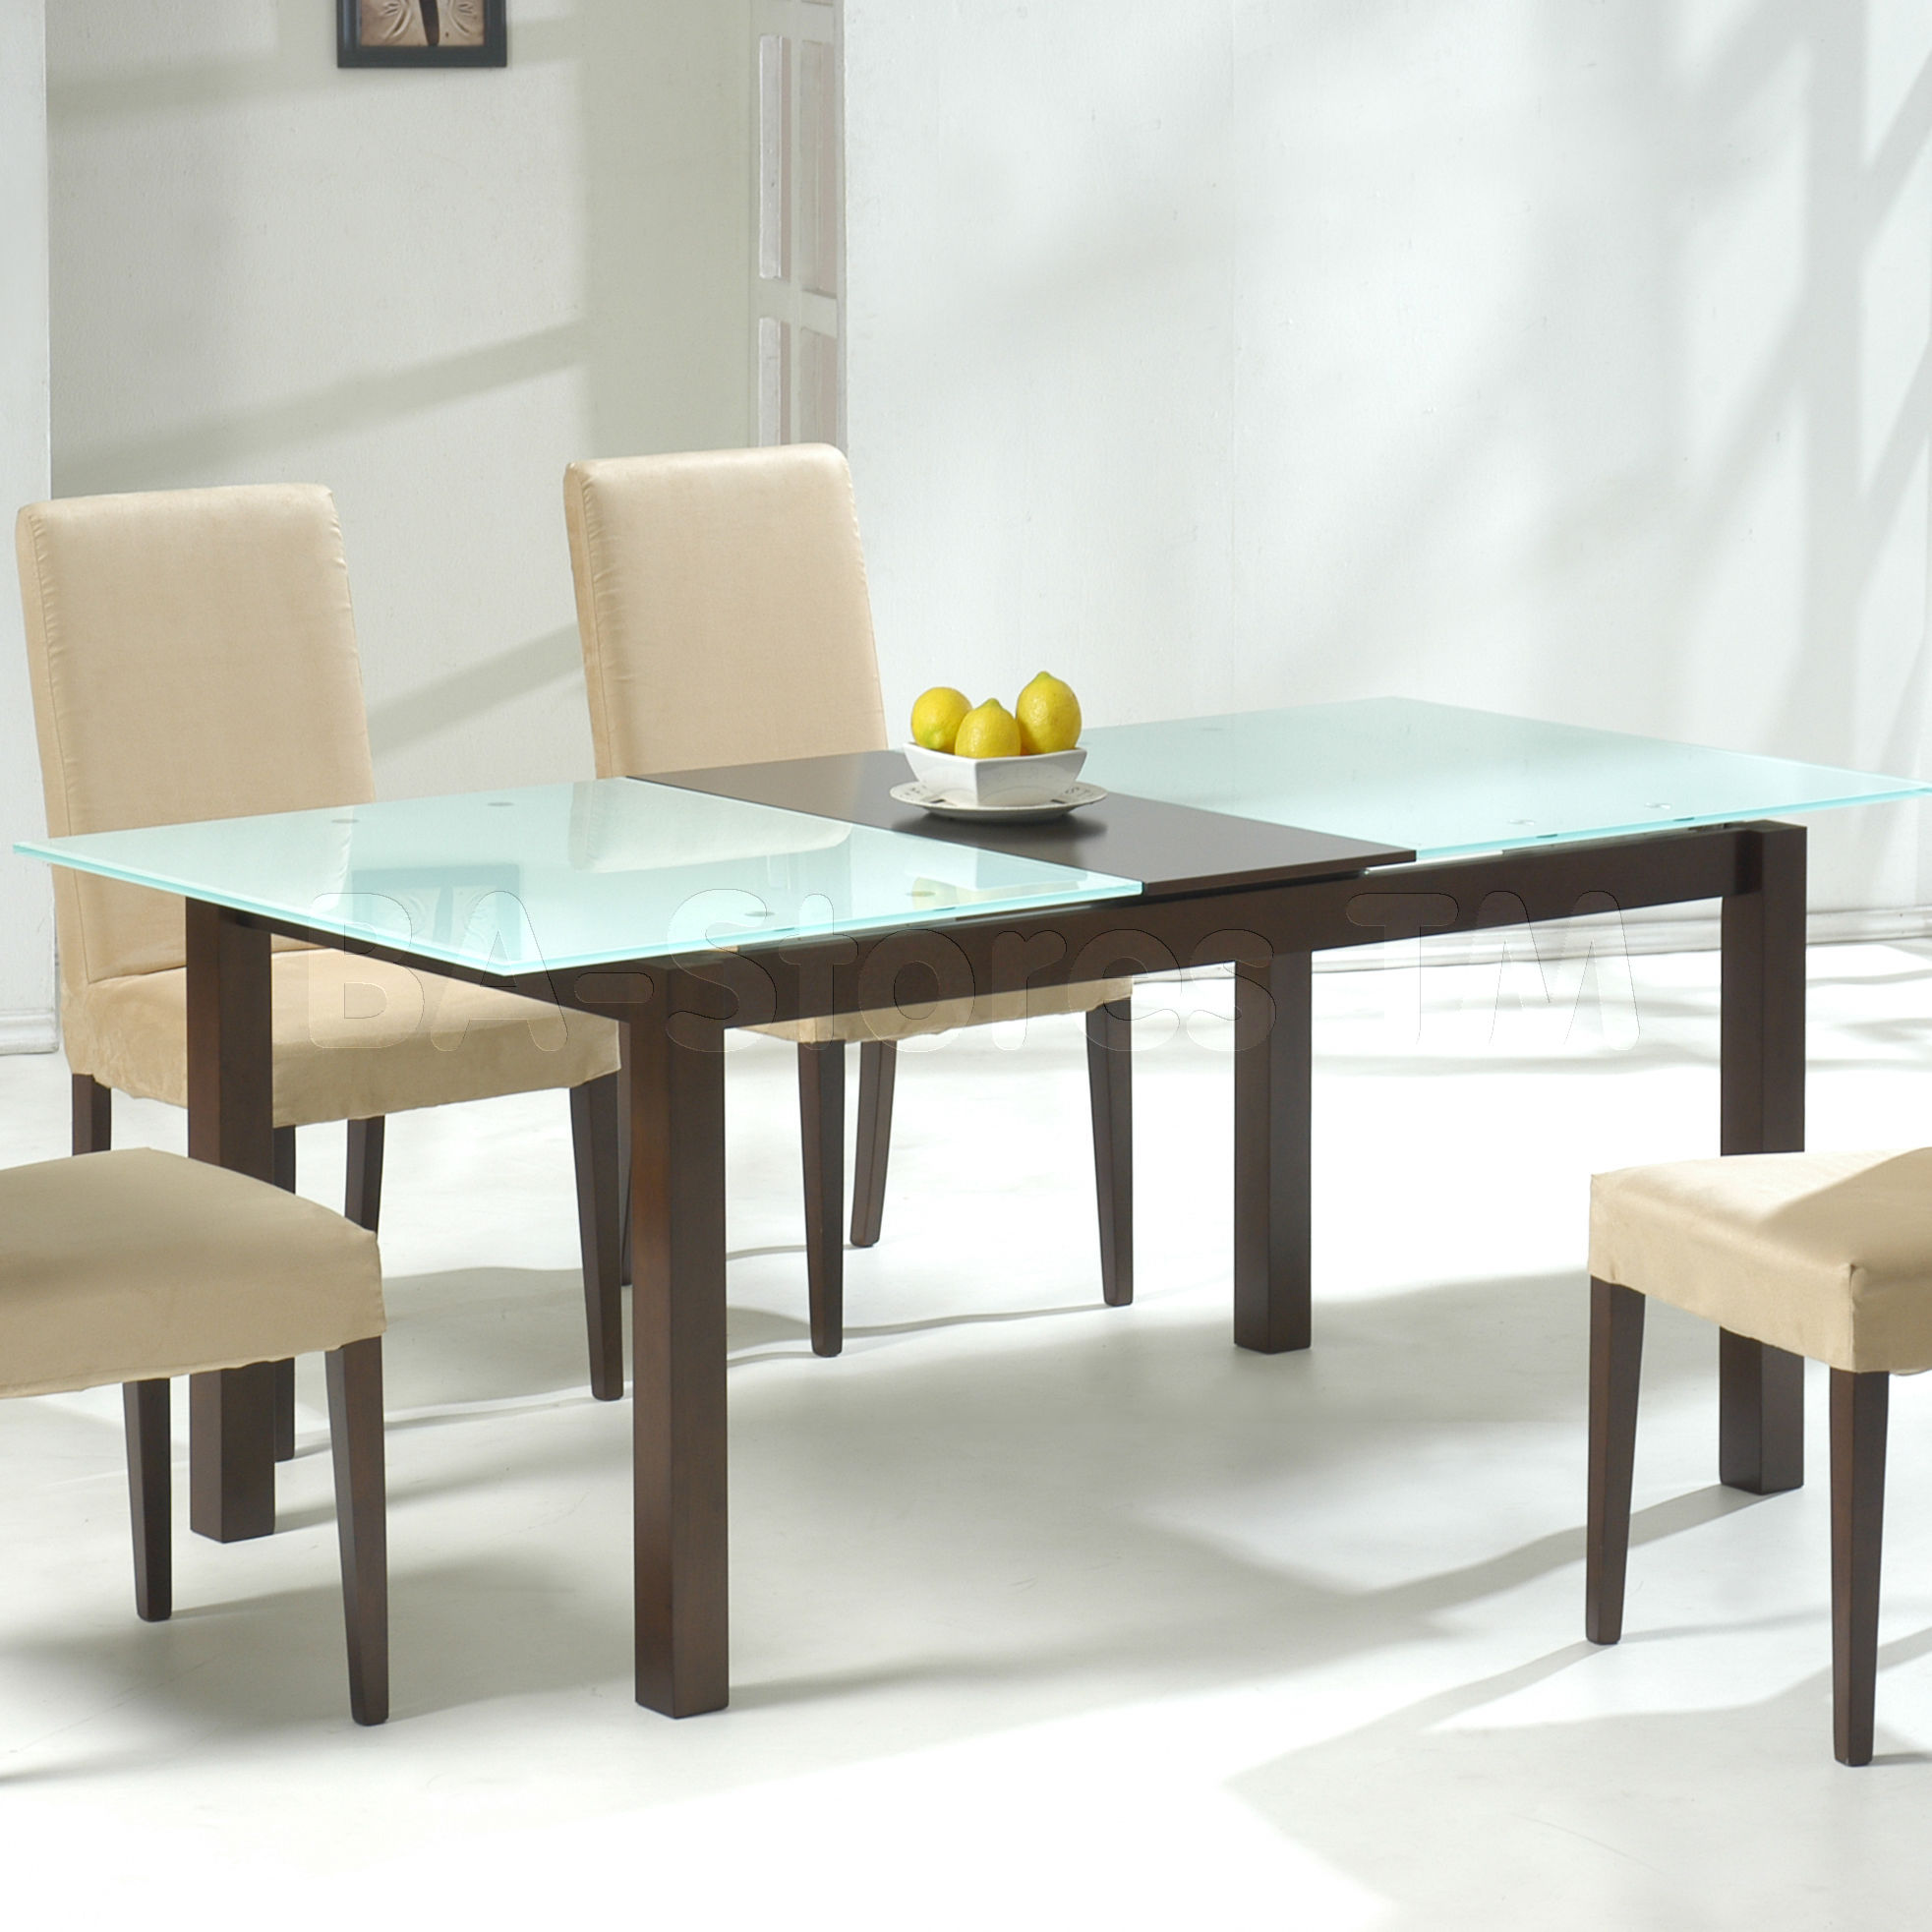 Wonderful Small Rectangular Glass Dining Table Part - 12: Wooden And Glass On Top Of Small Rectangular Dining Table With White Chairs